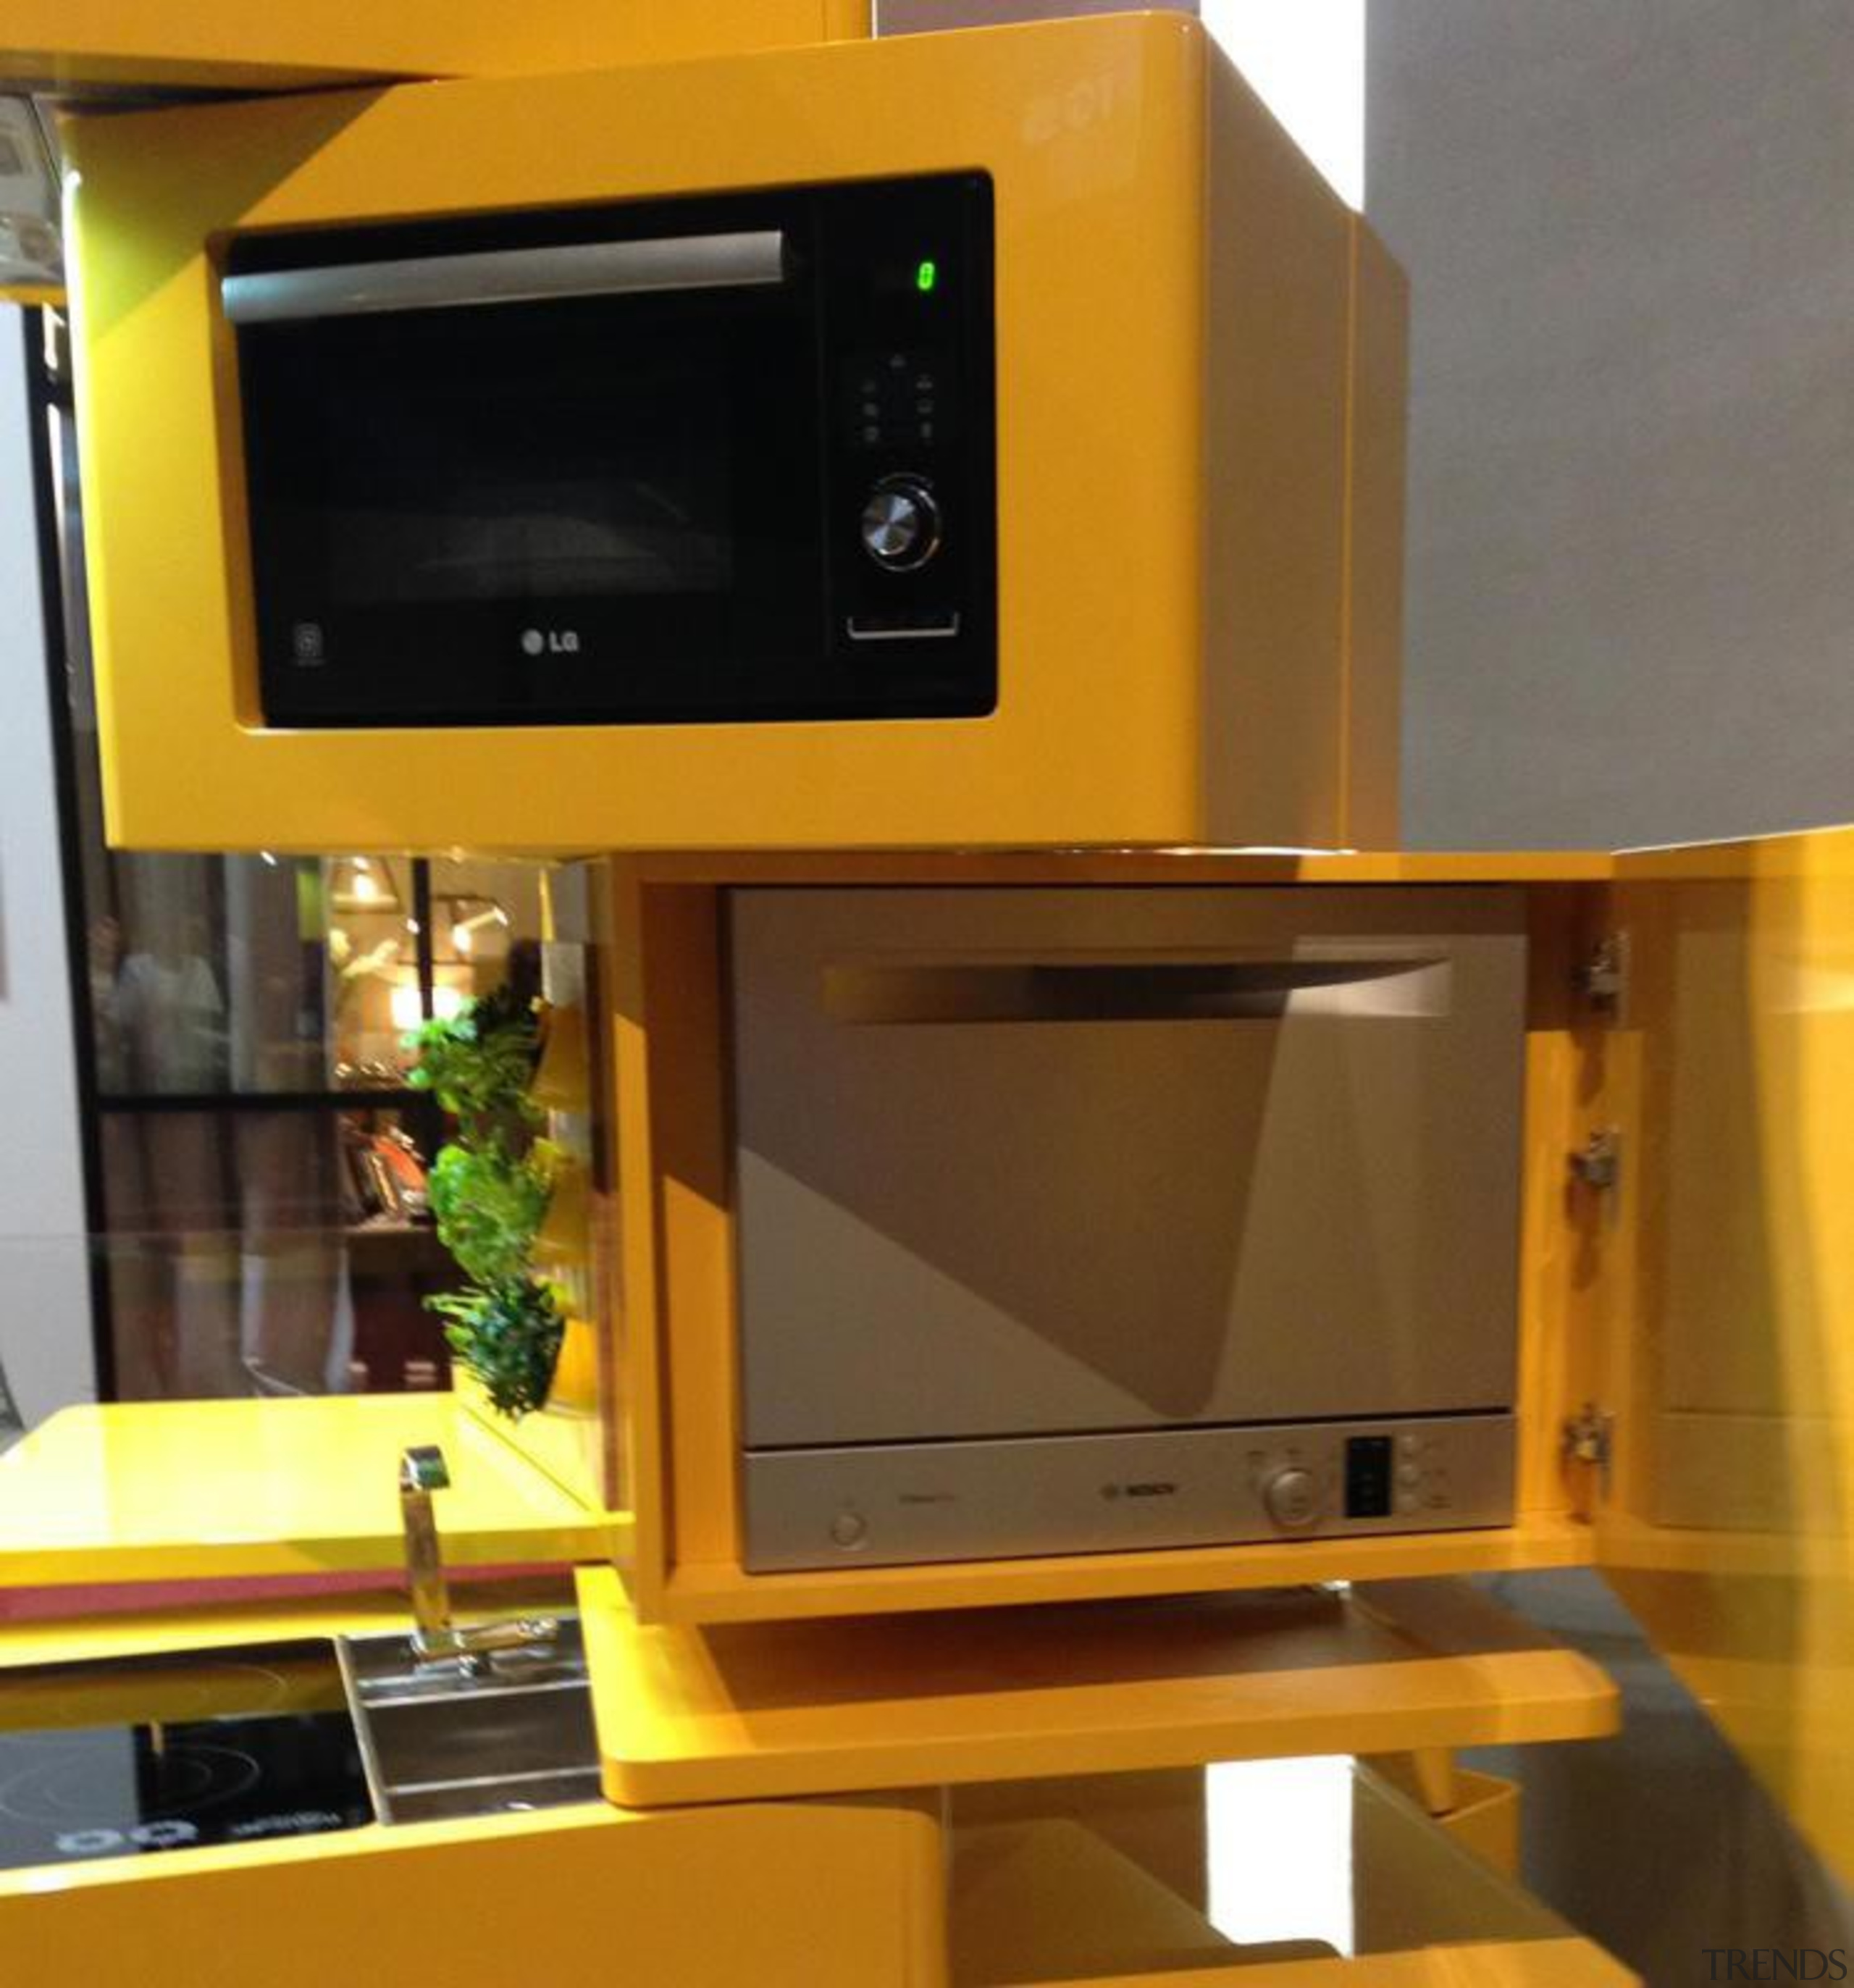 Forget 'bigger is better'; in the eco-conscious yet display device, electronic device, electronics, furniture, home appliance, technology, yellow, brown